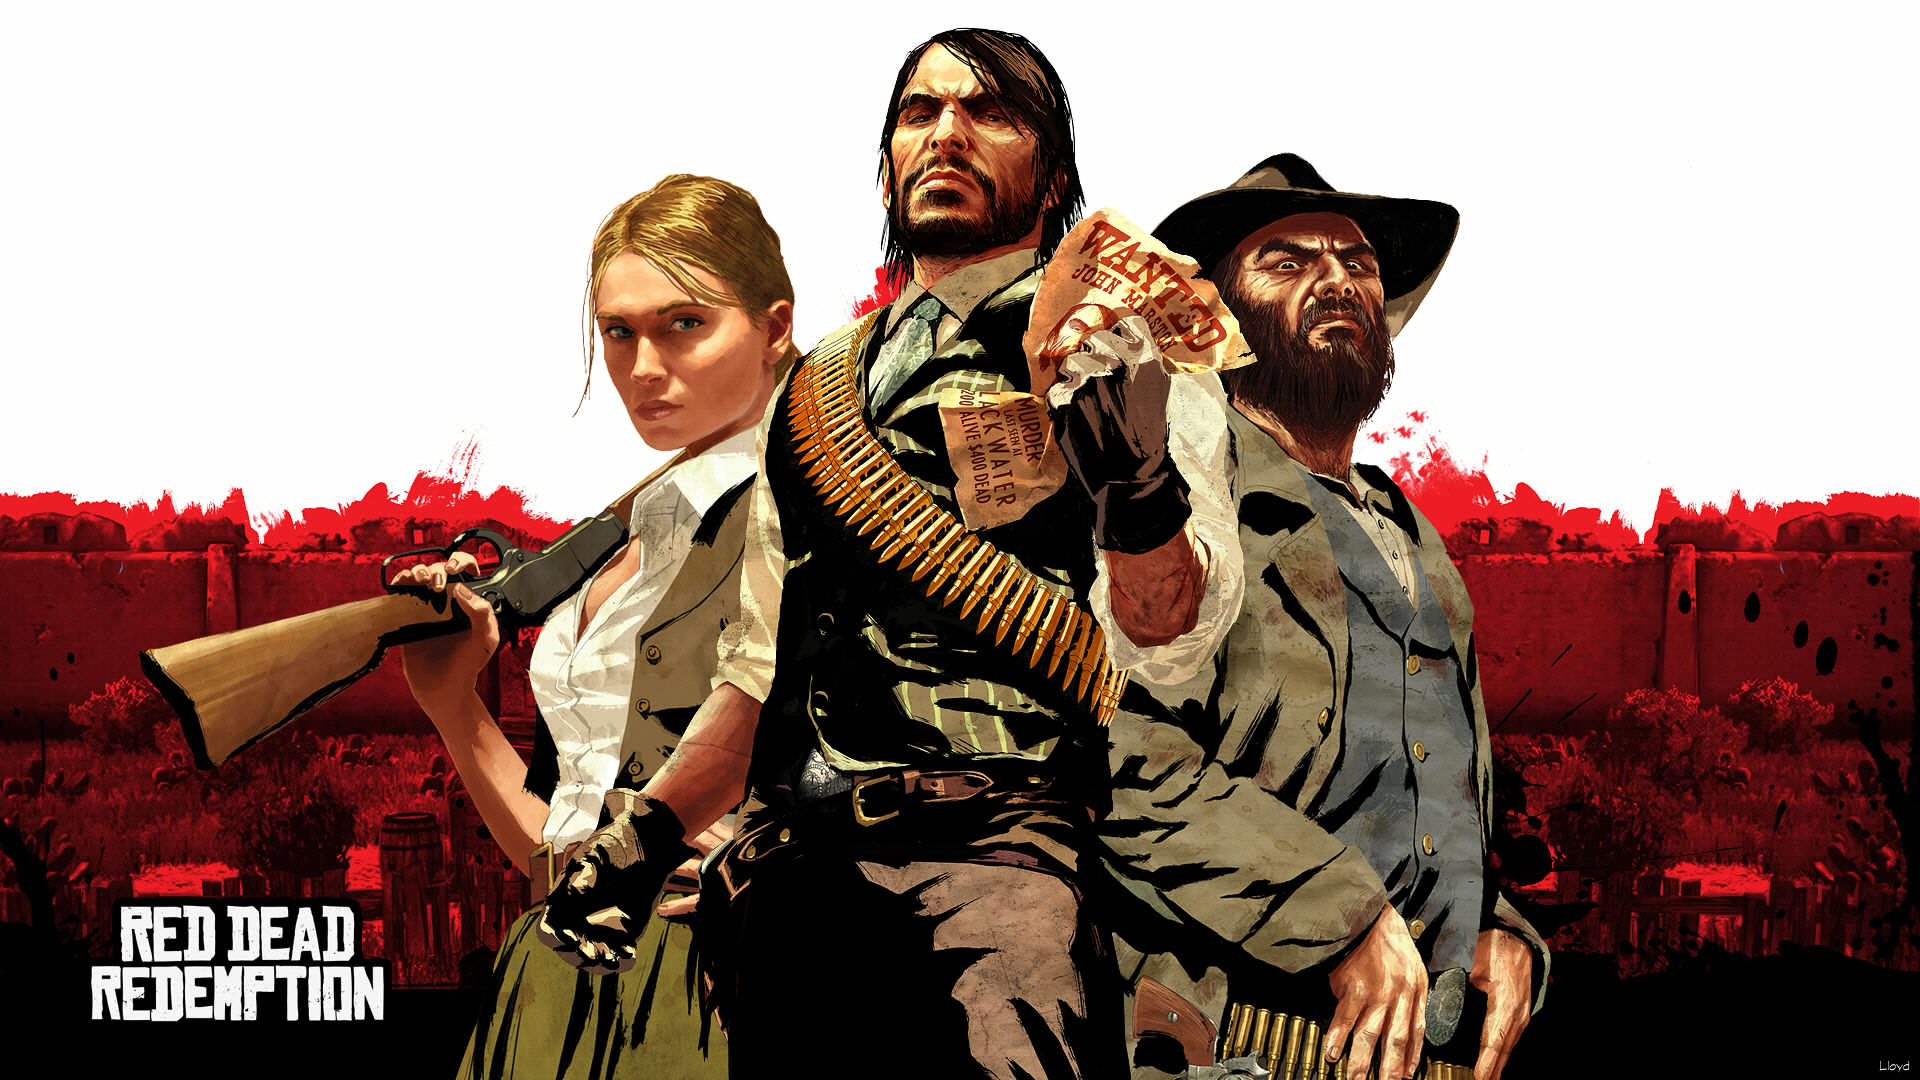 red dead redemption 2 the witcher 3 makes it clear what rockstar needs to do red dead r 444408 Red Dead Rumours Fuelled By Xbox One Discovery